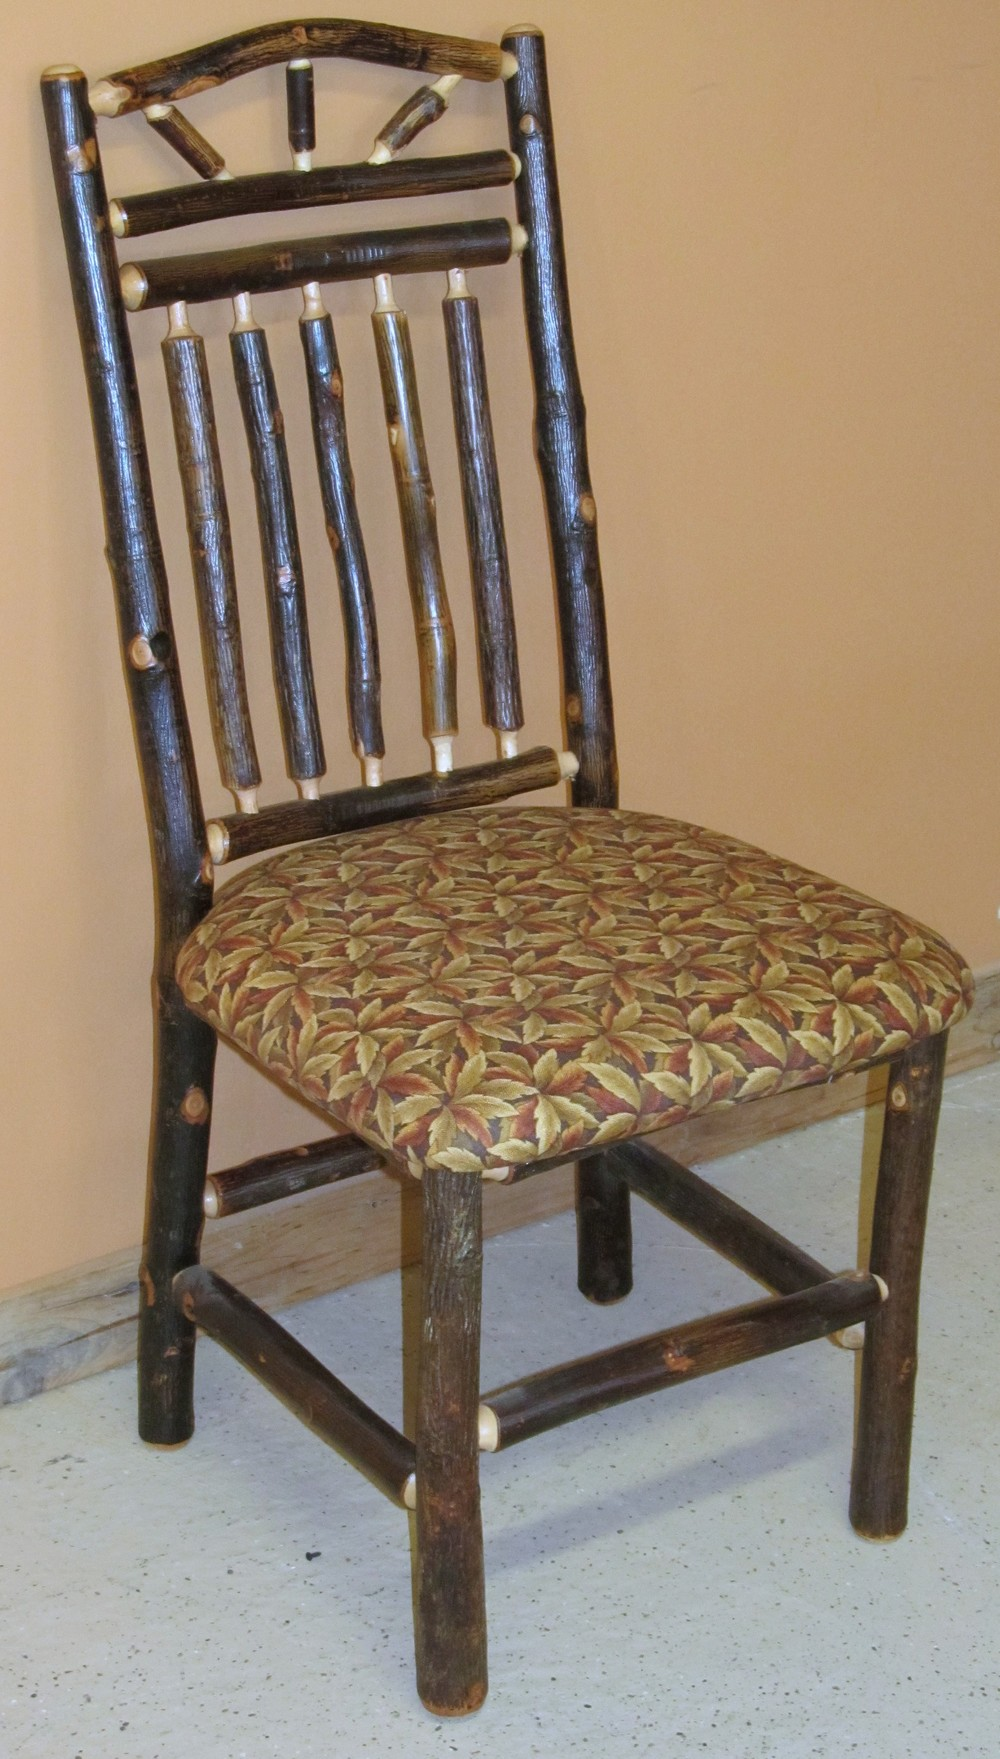 Rustic Dining Chairs Rustic Restaurant Furniture Rustic Hospitality Furniture And Wholesale